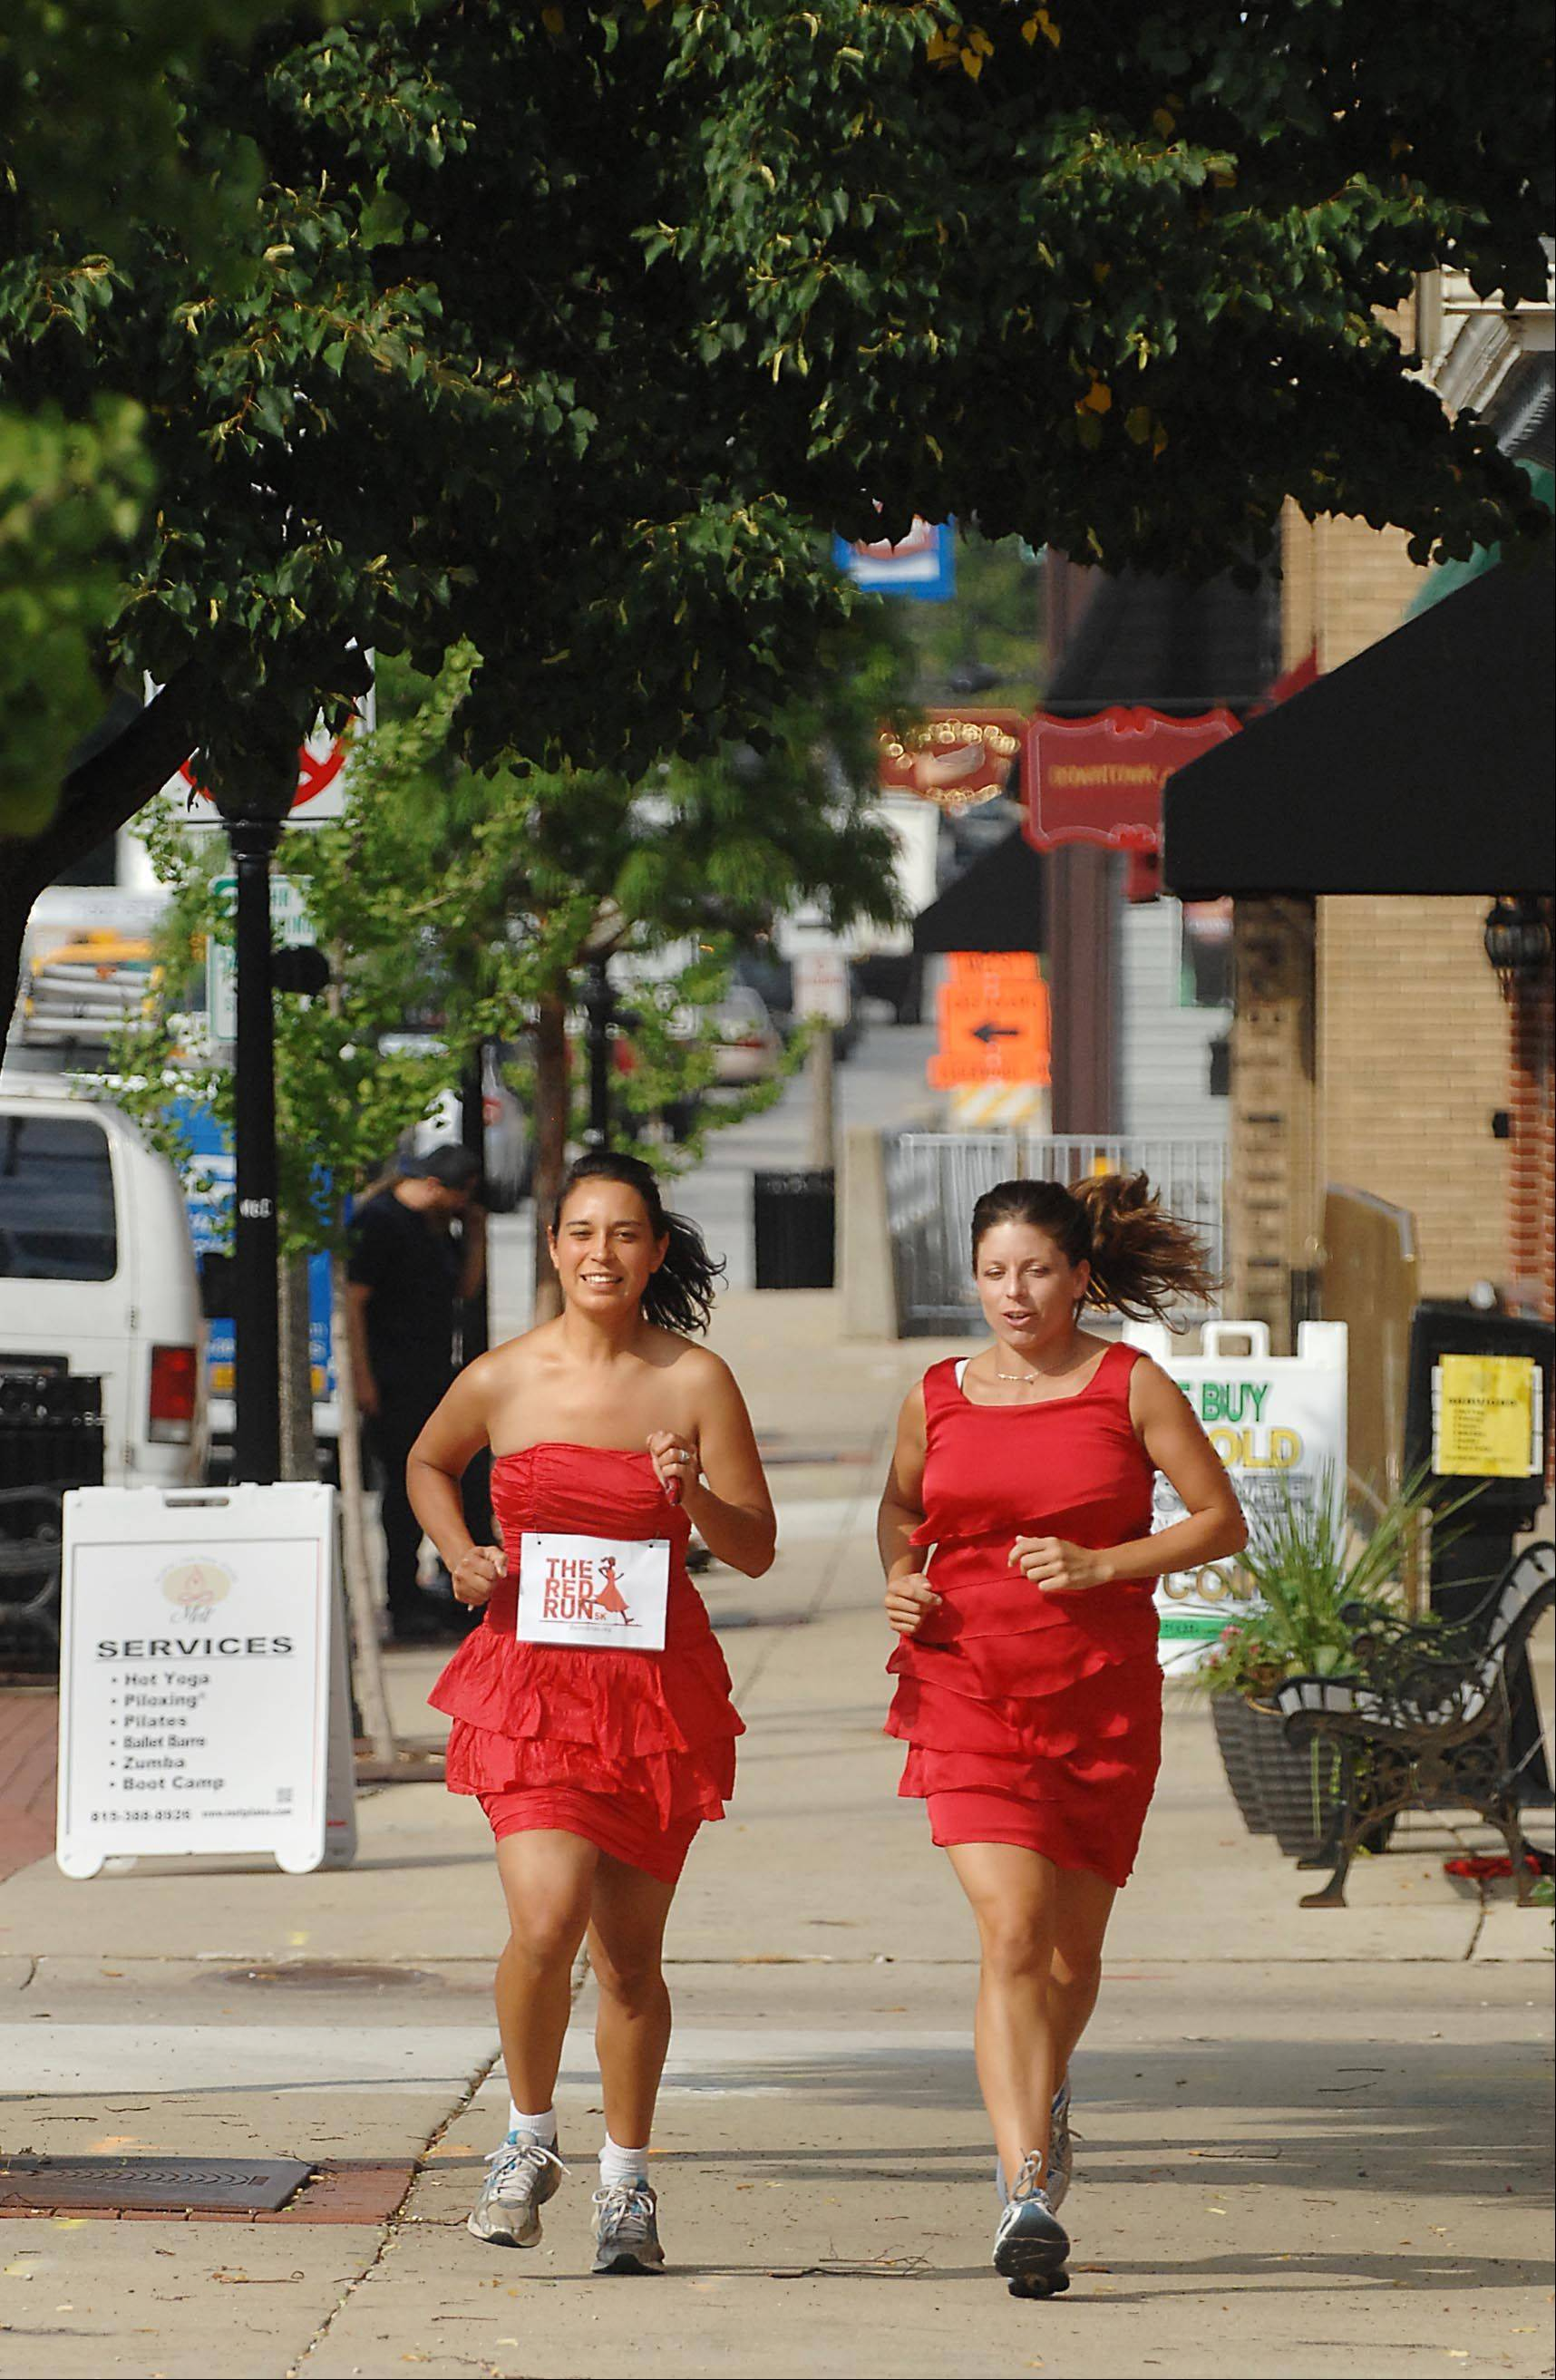 Cortina Nystad and Kristen Guerrieri, right, wear red dresses during their regular run at rush hour on Route 31 in Algonquin. The Algonquin moms wear red dresses after seeing photos of young Cambodian girls sold into the sex slave industry, who were also wearing red dresses. They have organized the Red Run 5K Run/Walk to benefit organizations who help combat the problem.